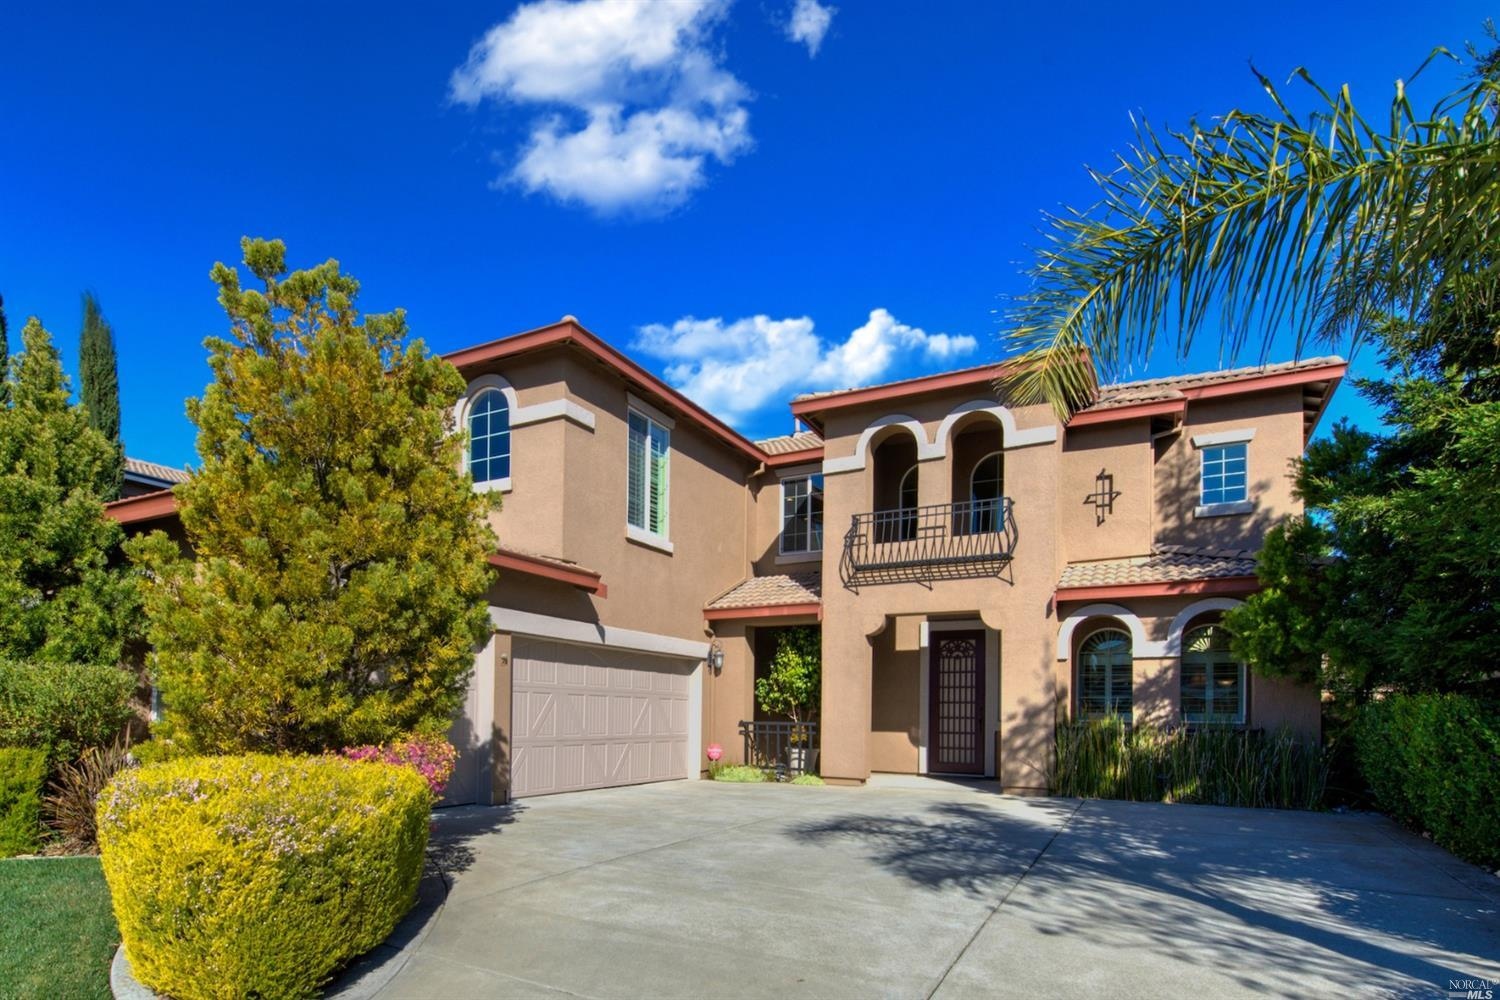 Luxury South Town home with a 3-car garage located in the highly desired Travis School District near